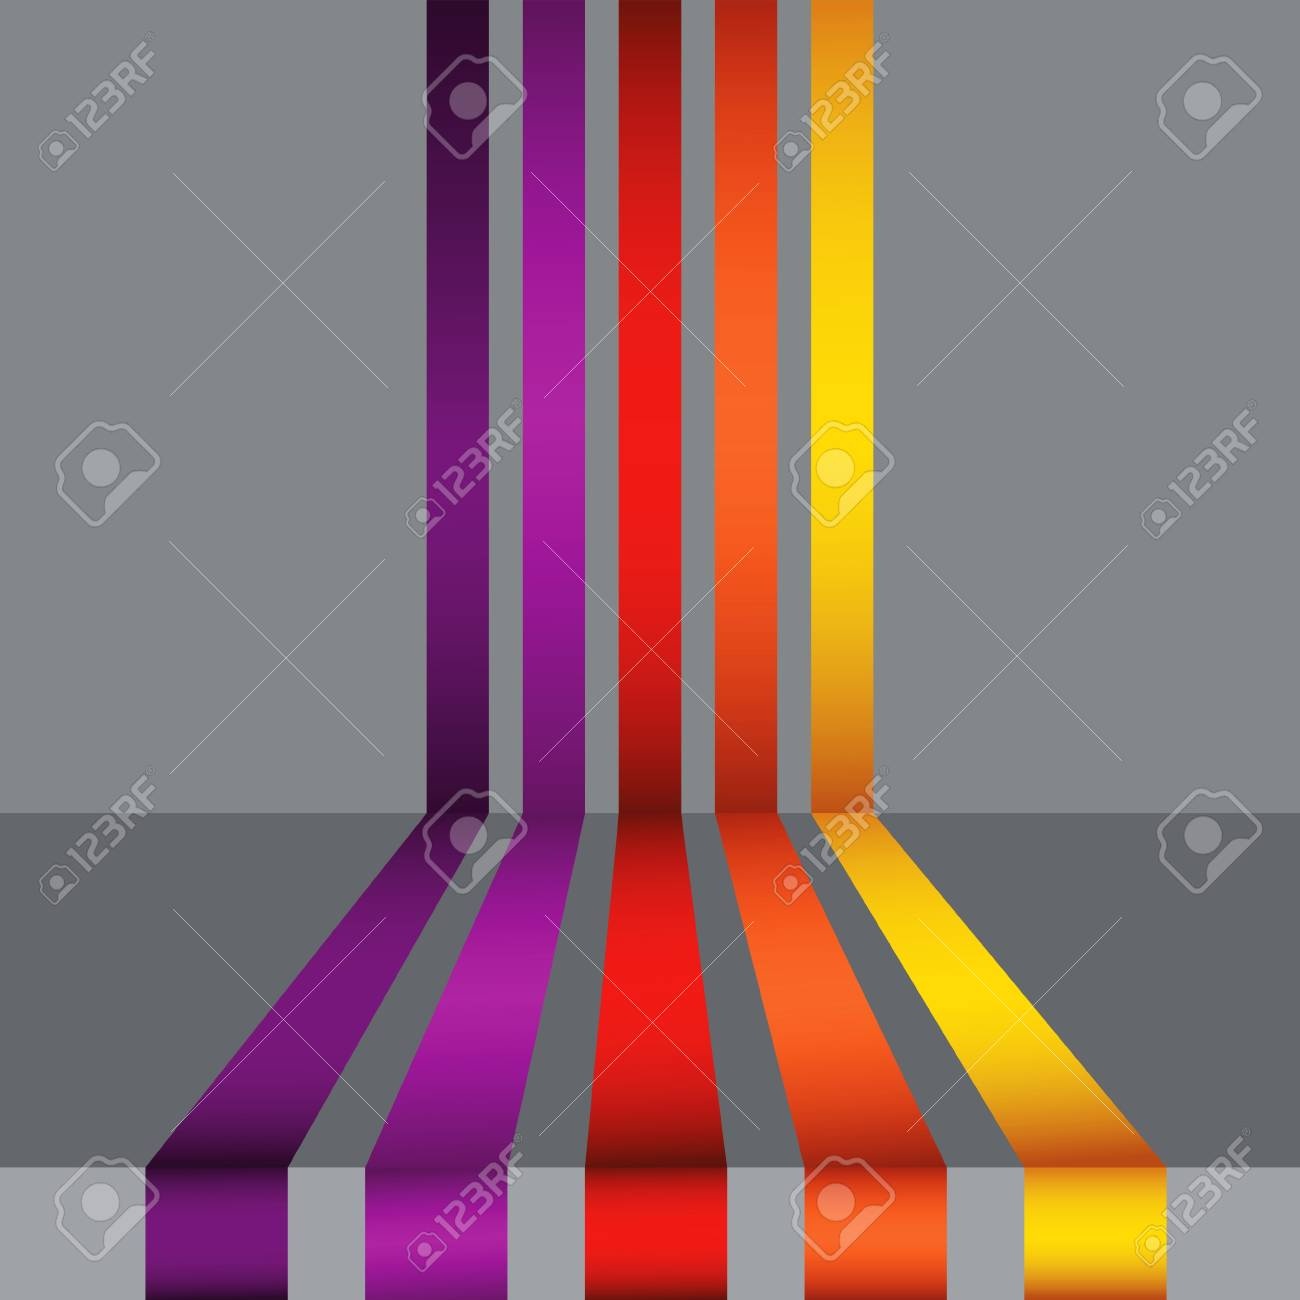 colorful illustration with abstract background for your design Stock Vector - 18254299